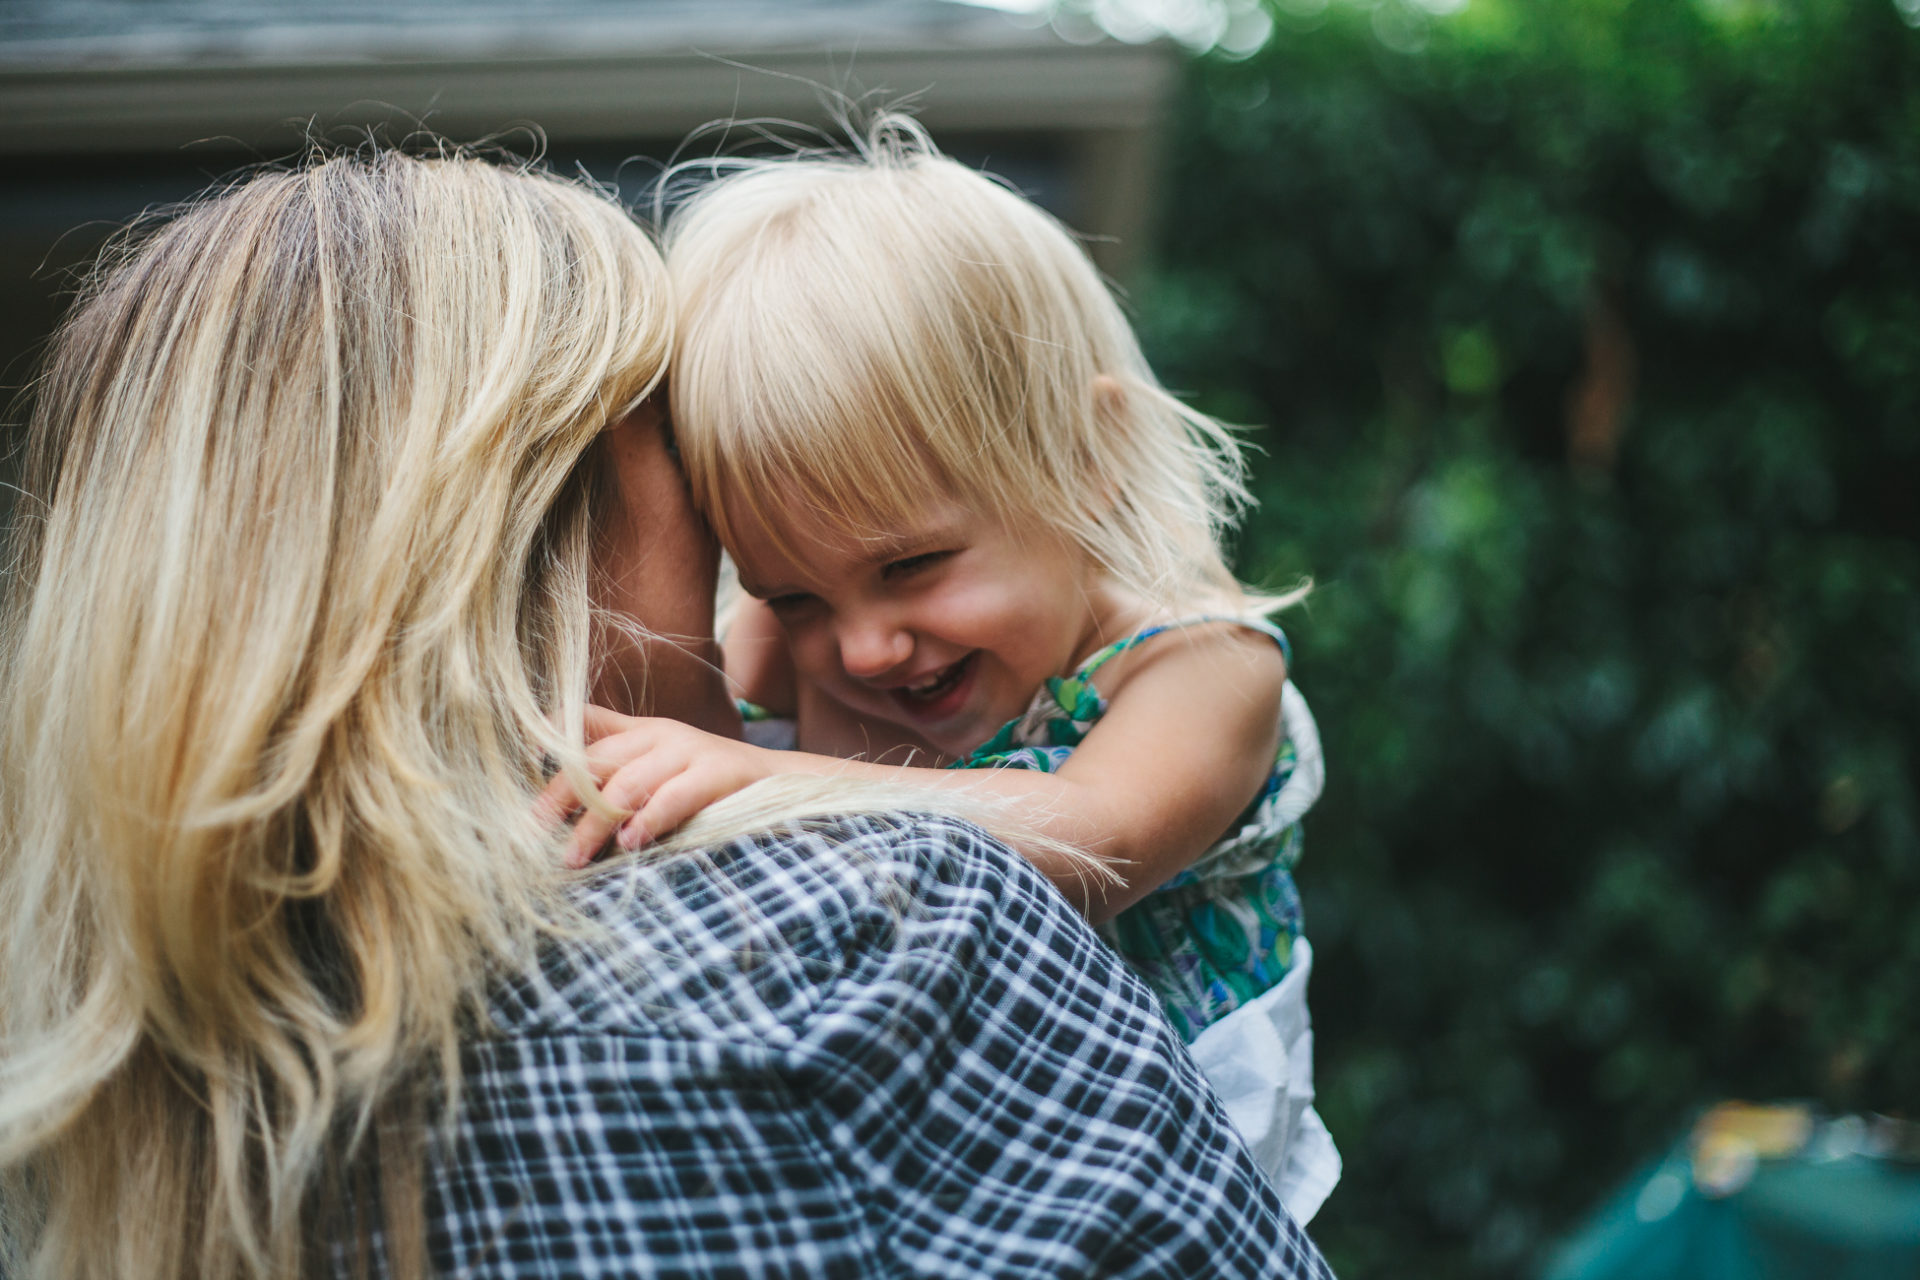 Mom snuggles daughter in a documentary style photograph | Leah Verwey Photo